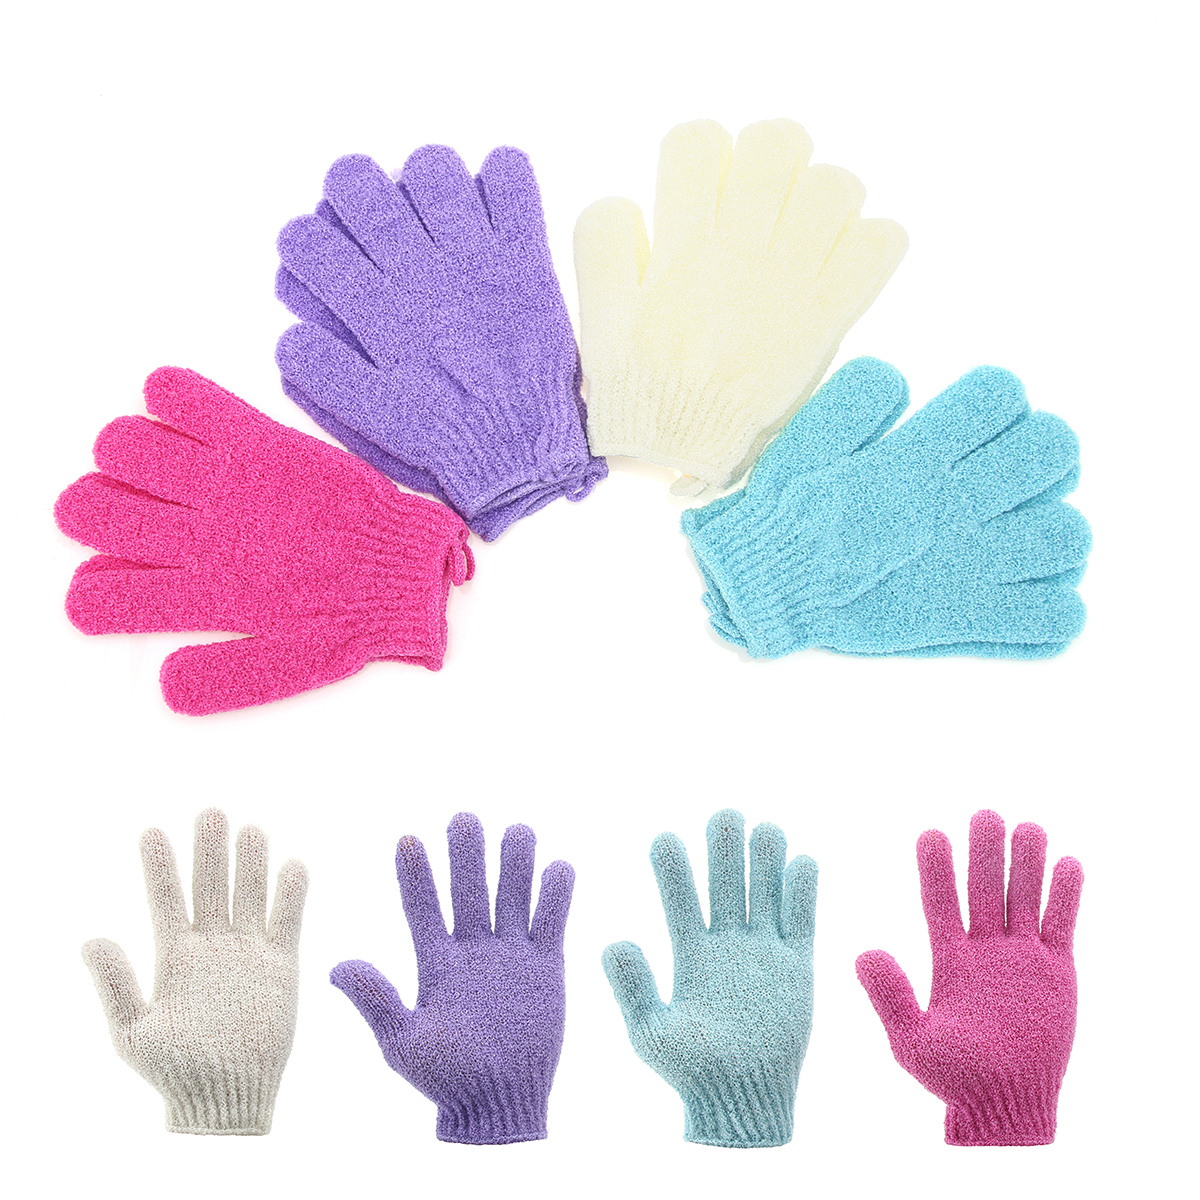 4 Pairs Exfoliating Shower Bath Gloves- Body Scrubber for Men and Women Dead Skin Cell Remover 4 Different Colors